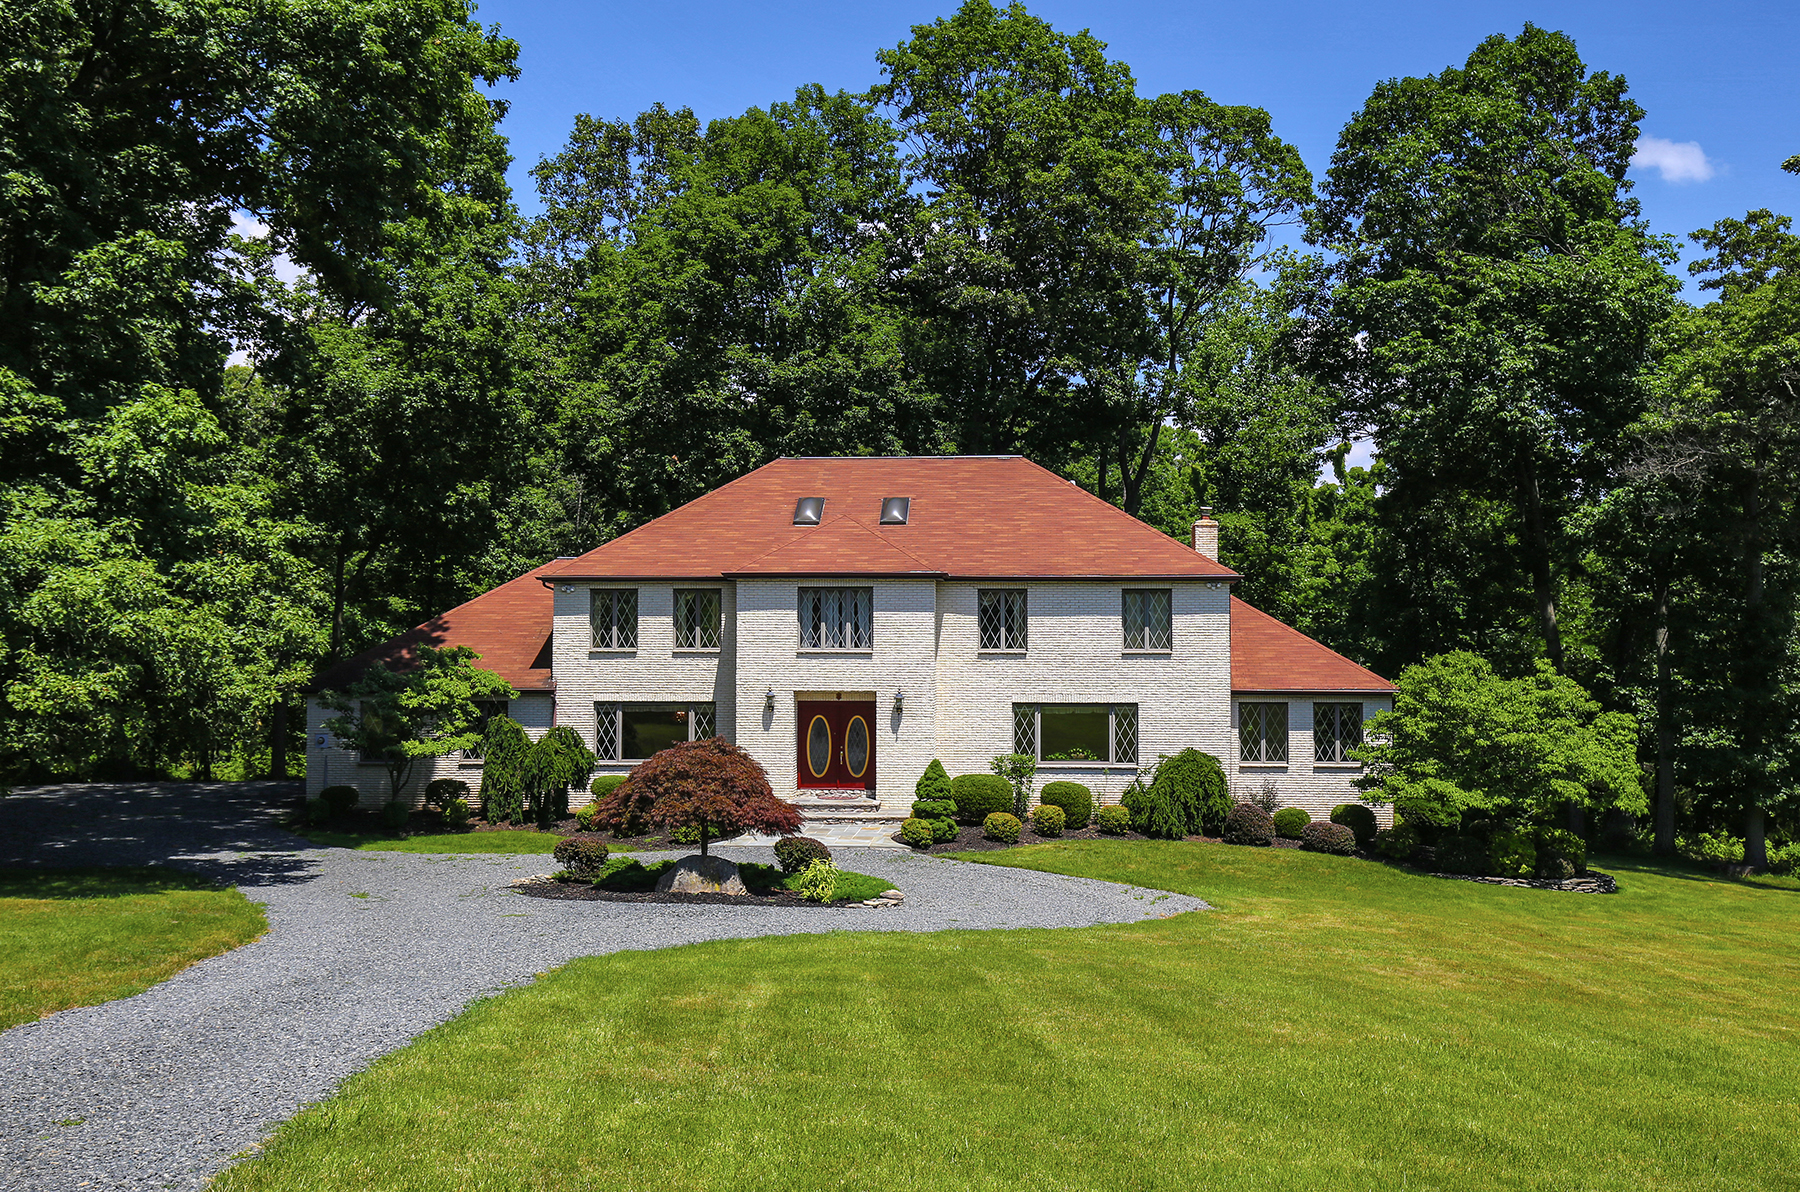 Single Family Home for Sale at Gracious Colonial 67-2 Ballantine Road Bernardsville, New Jersey, 07924 United States